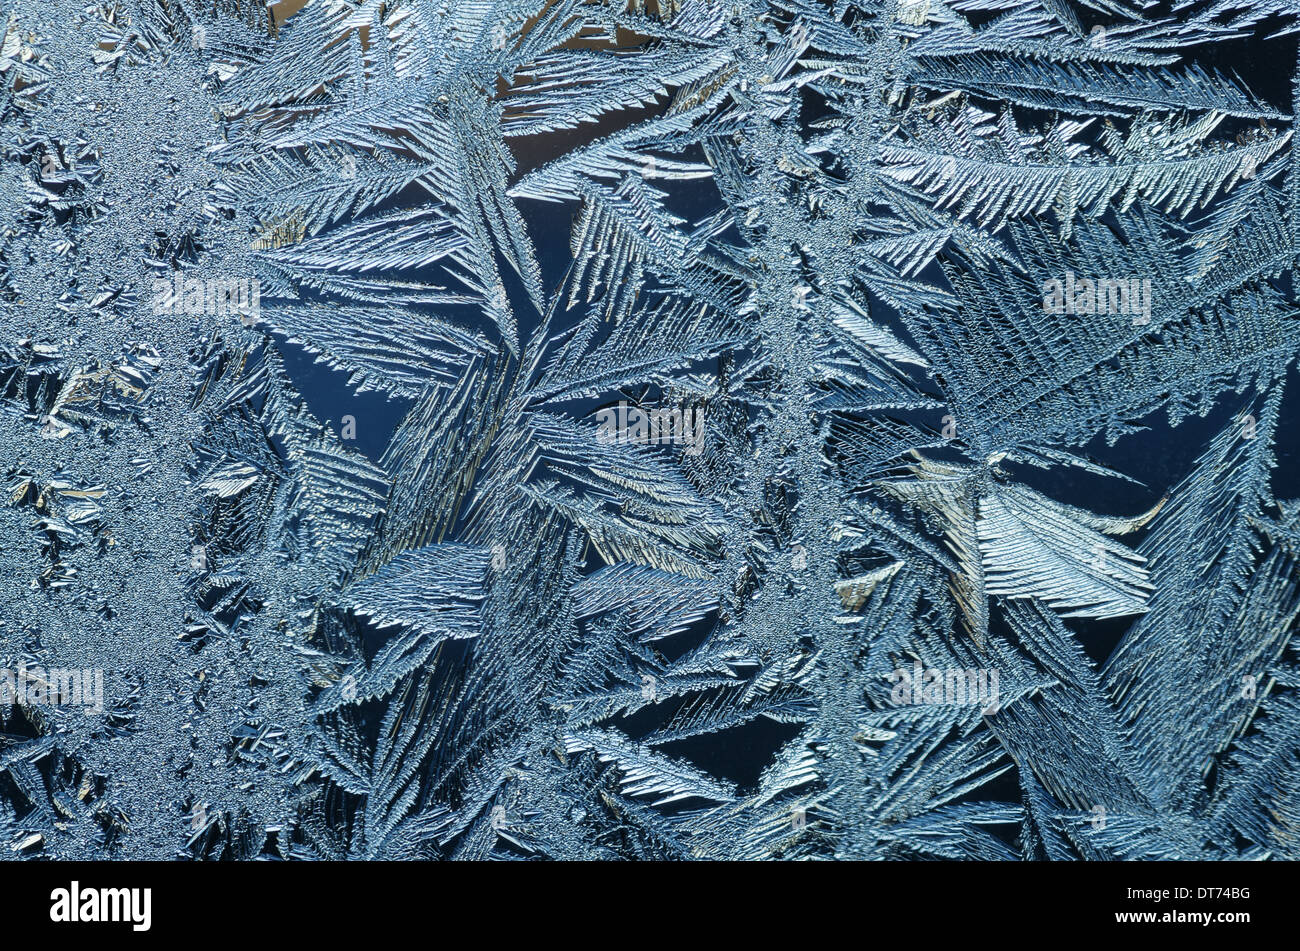 macro image of frost crystals on a window pane Stock Photo